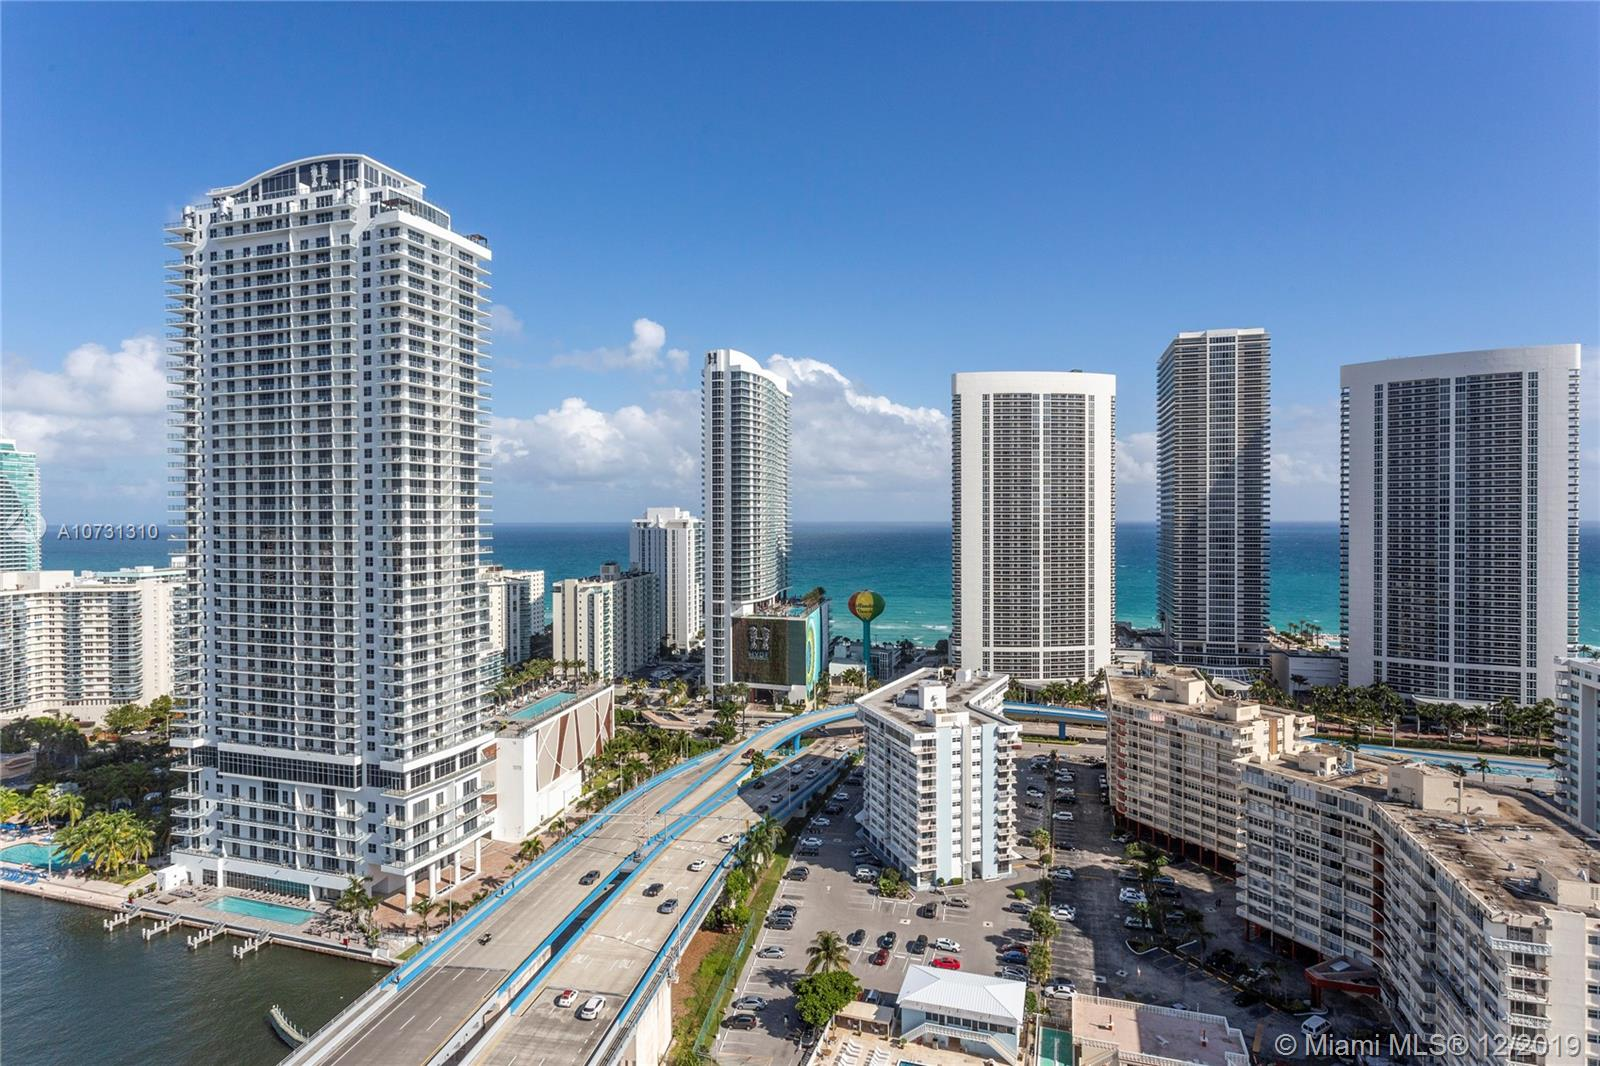 PRICED TO SELL! Beautiful Hallandale Beach. Beachwalk Condominium, Fabulously designed modern 3/3, condo unit with private entrance, great terrace w/glass railing, 2 infinity edge pools, one on the Roof Top! Cielo Club 34th floor, fully equipped fitness center. AIRBNB APPROVED! No Rental Restrictions. Hallandale Beach conveniently located between Ft Lauderdale, Miami, Aventura with access to Fort Laud/Hollywood, MIA, Port Everglades, Port of Miami, and I-95. as well as beautiful beaches